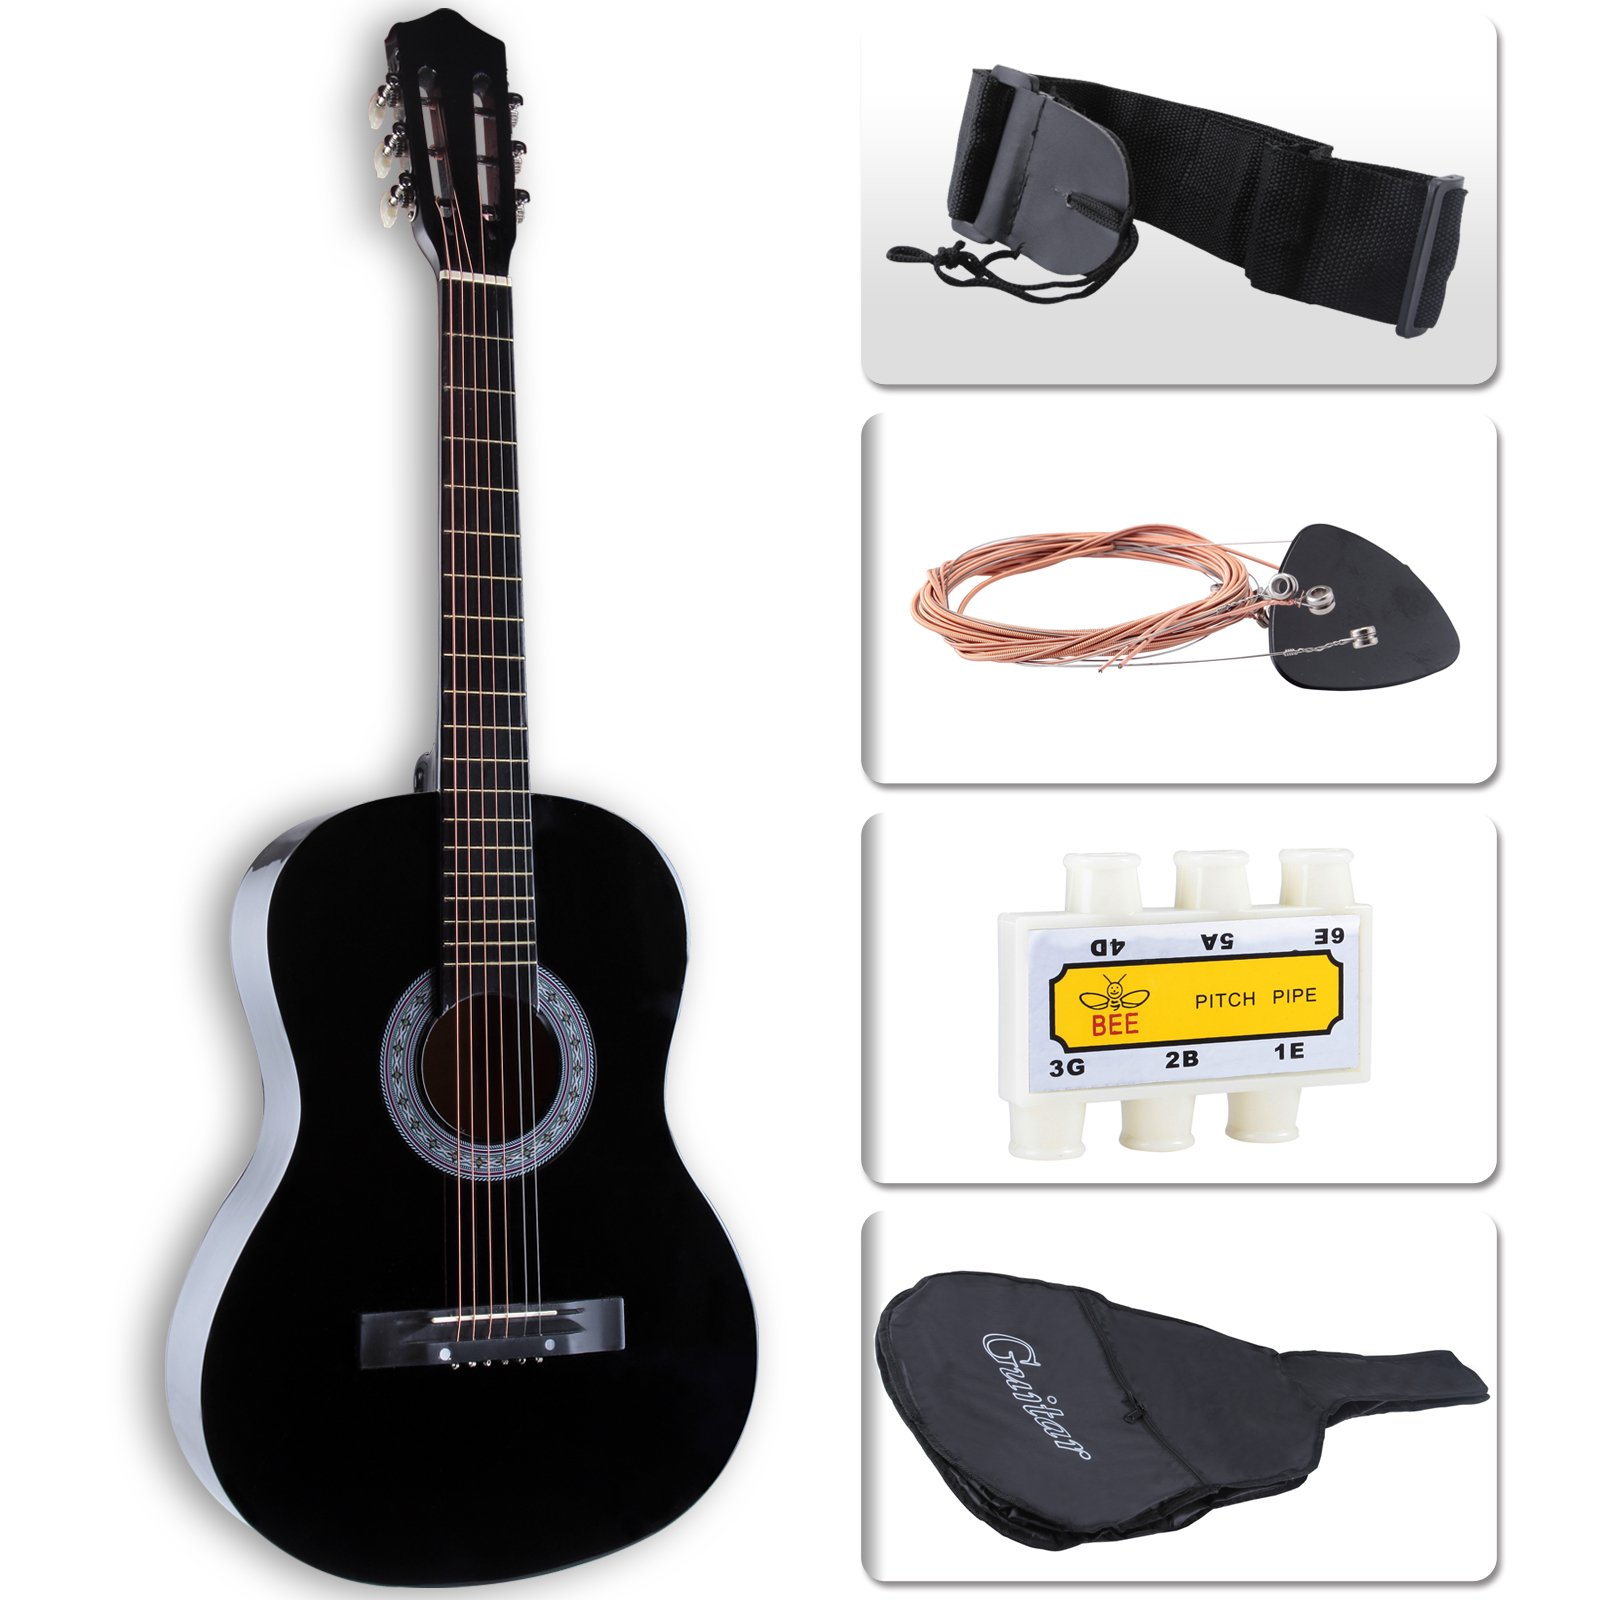 LAGRIMA 38'' Acoustic Guitars, Cutaway Design Natural 6 Steel Strings Youth Kids Guitars with Nylon Bag,Tuner, Picks, Strap for Beginners, Adults Blue